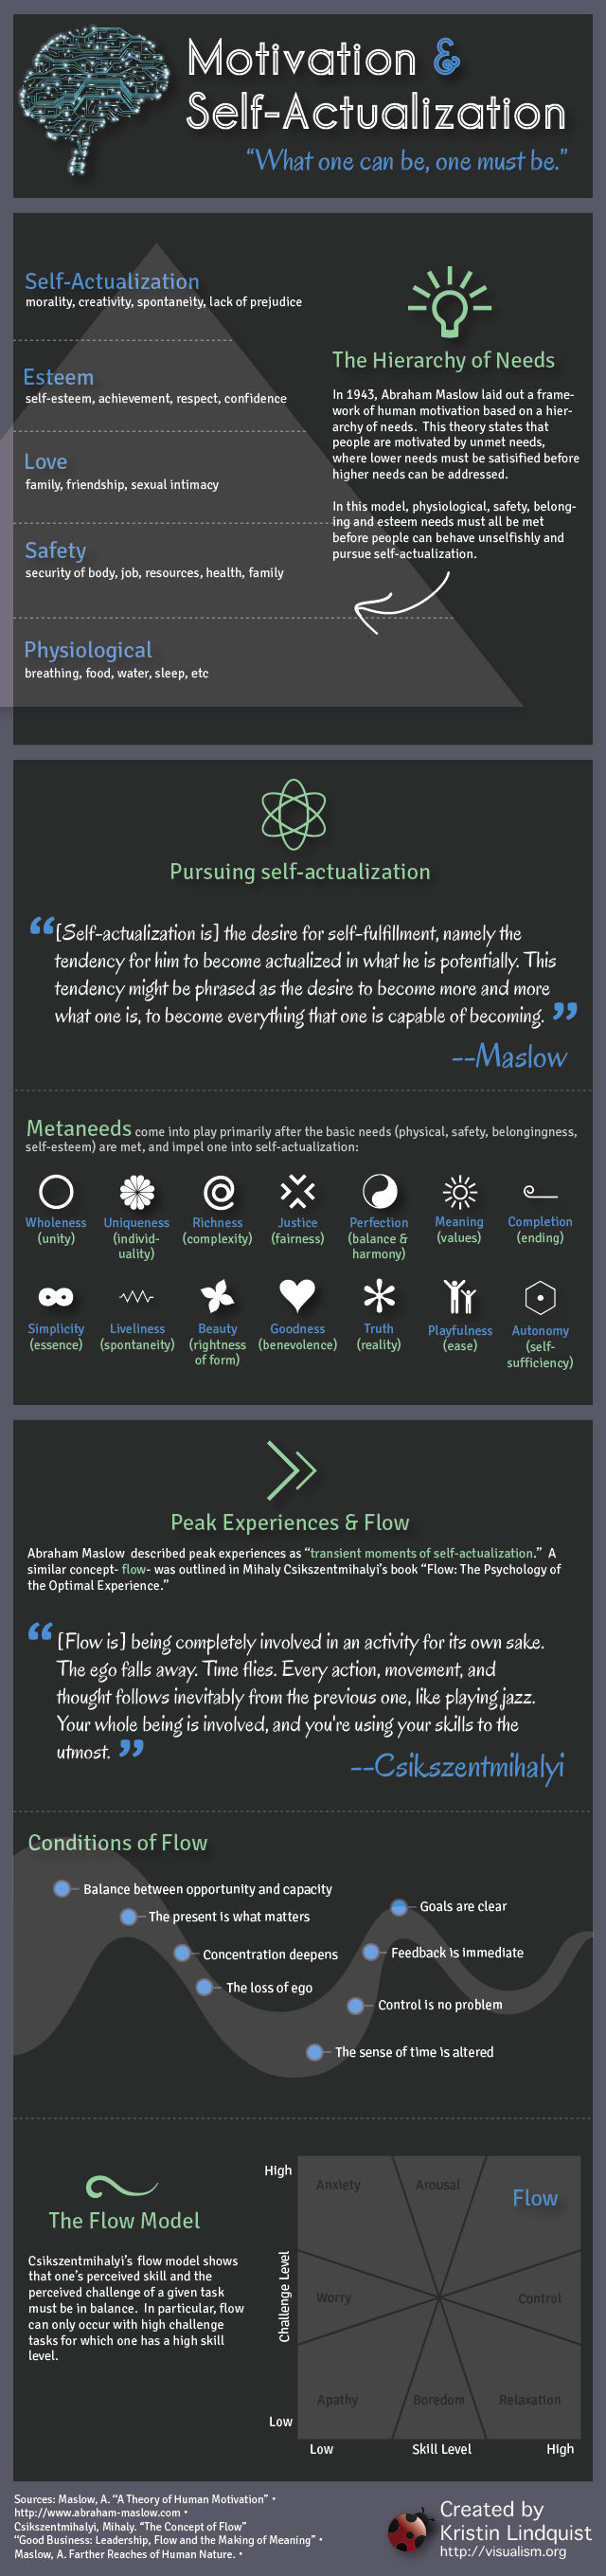 INFOGRAPHIC: Motivation and Self-Actualization